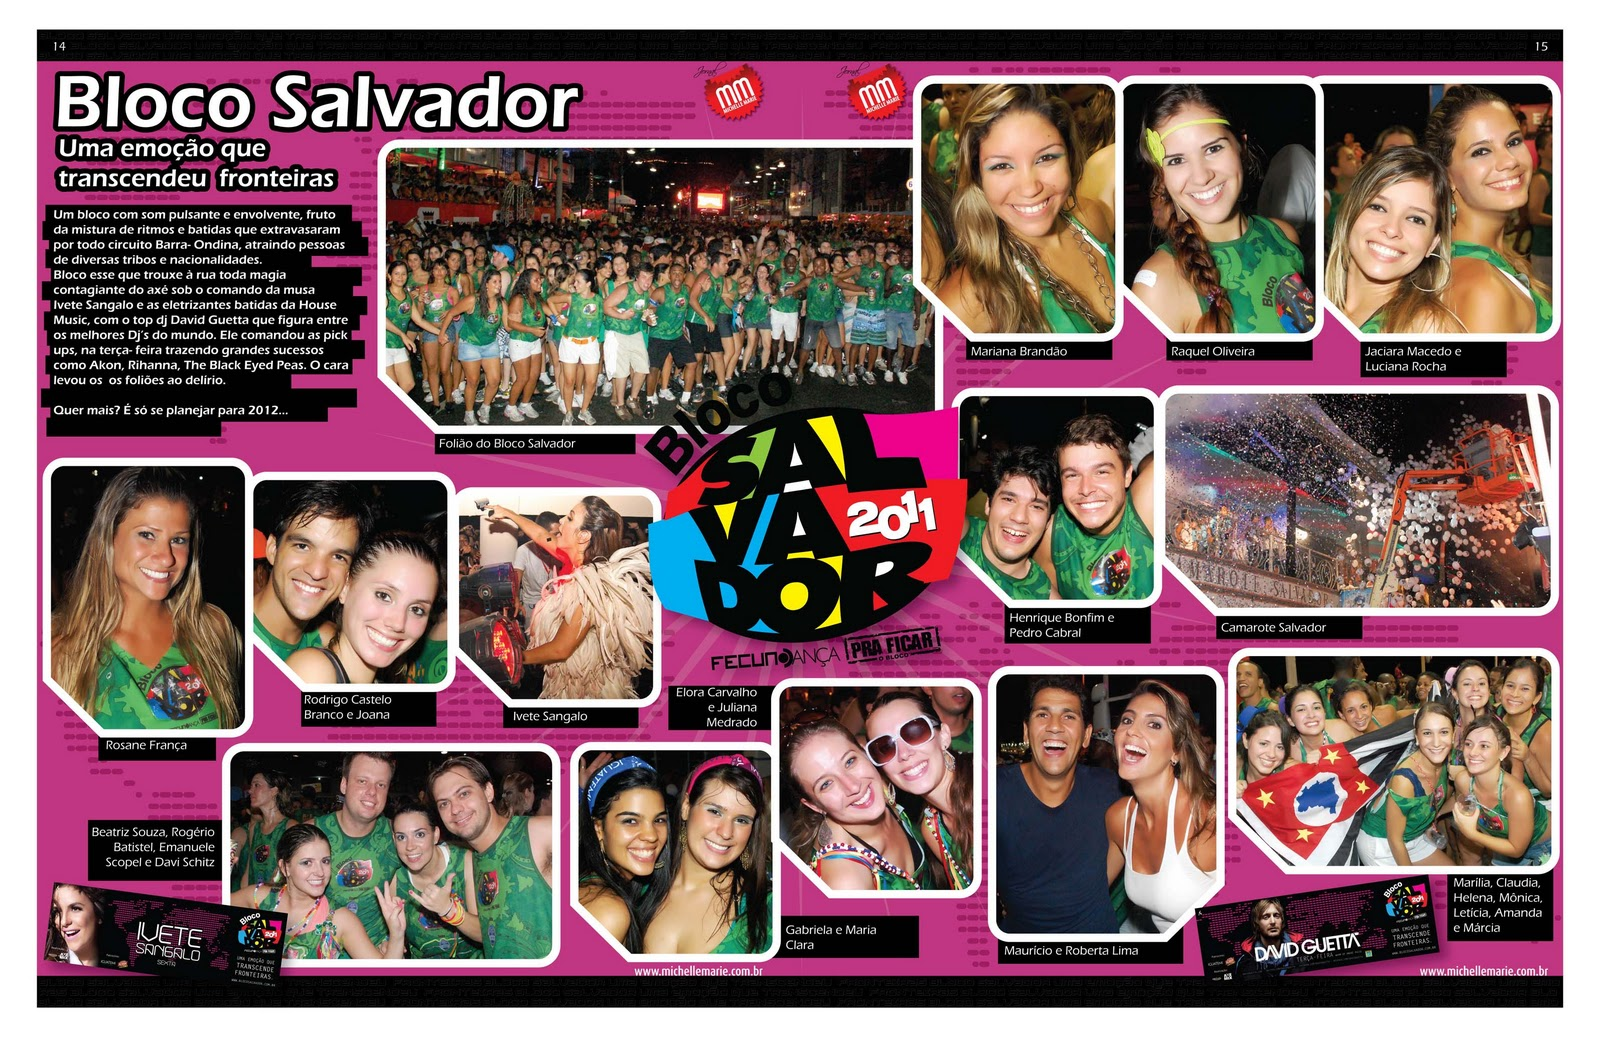 jornal mm camarote salvador pag 14 15 Carnaval in Brazil: Customizing Your Abadá